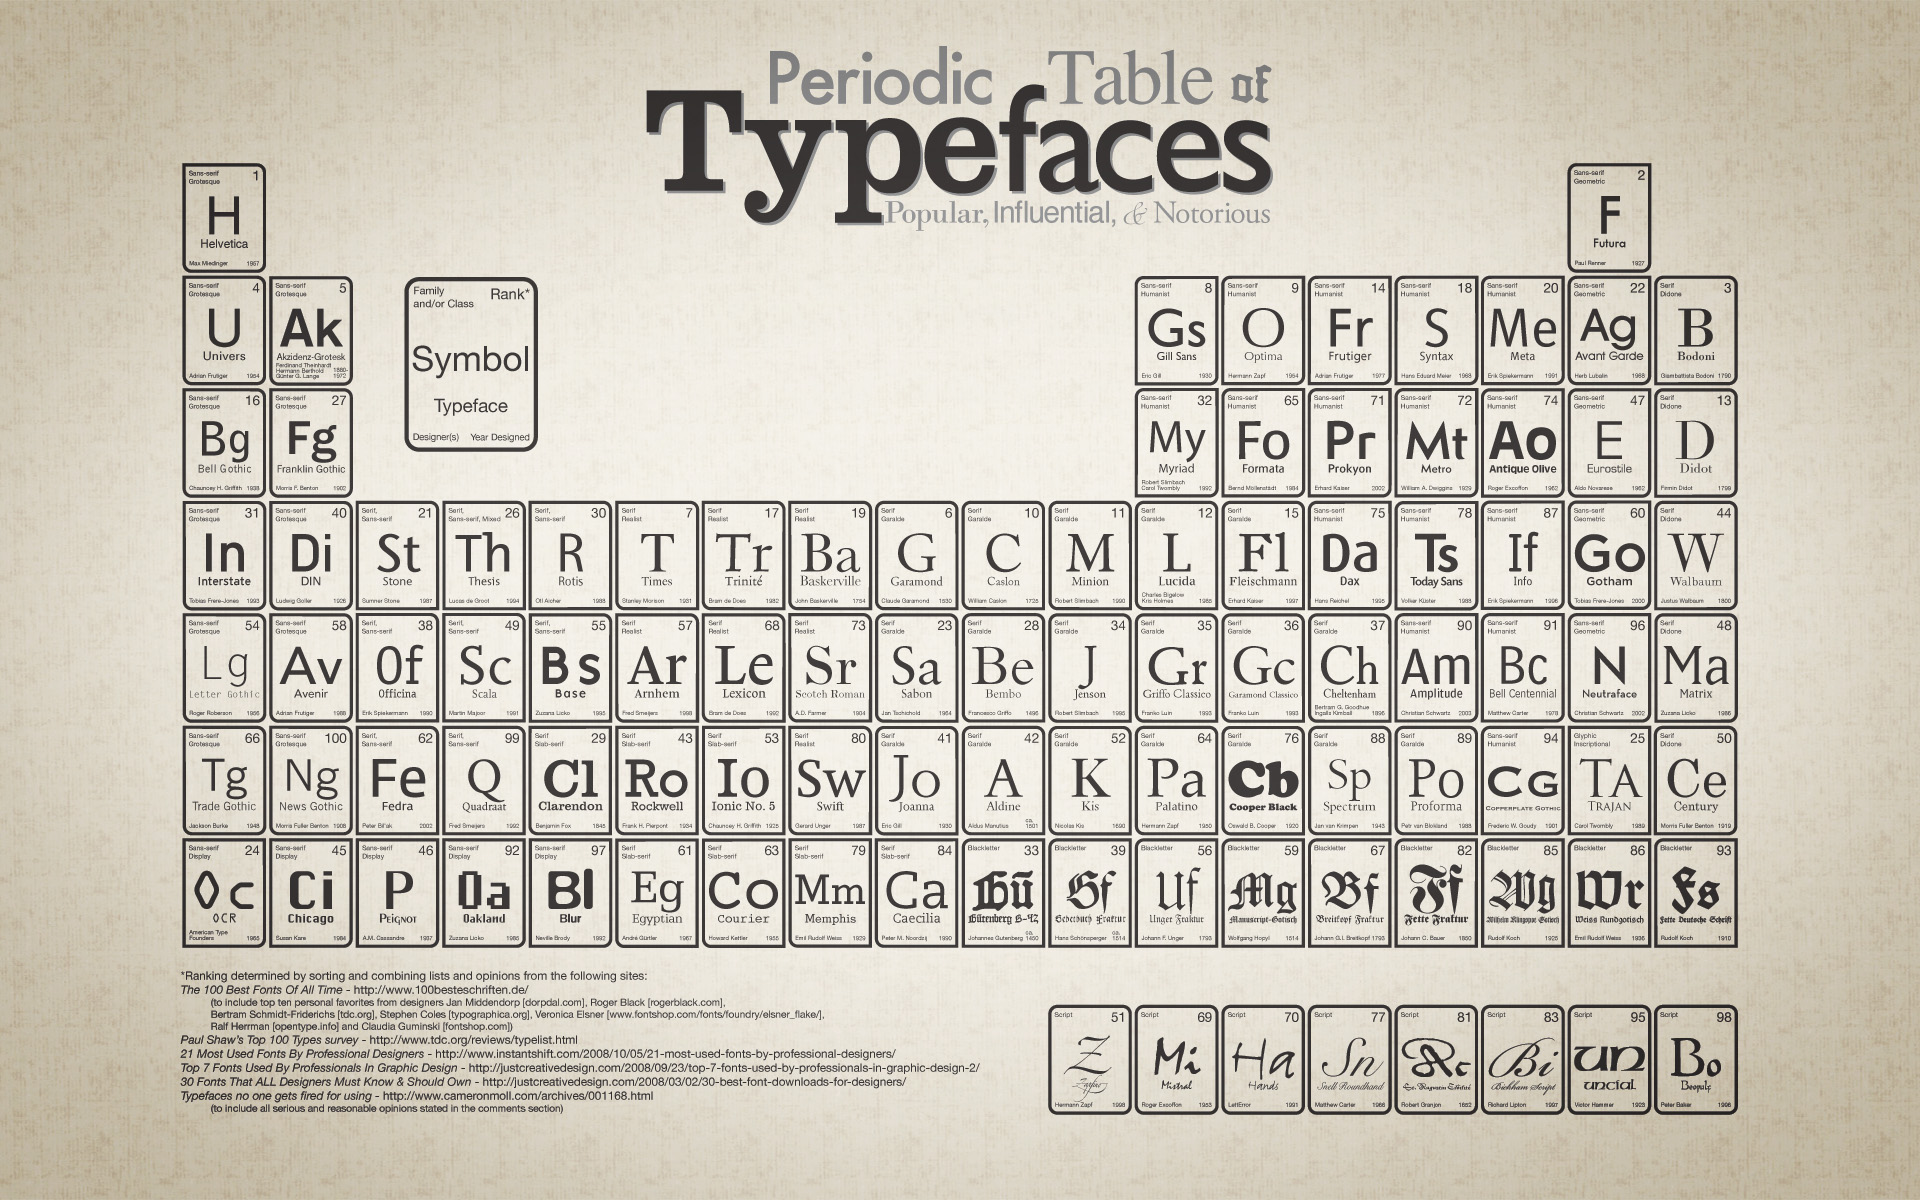 1920x1200 periodic table of typefaces desktop pc and mac wallpaper 1920x1200 periodic table of typefaces gamestrikefo Choice Image